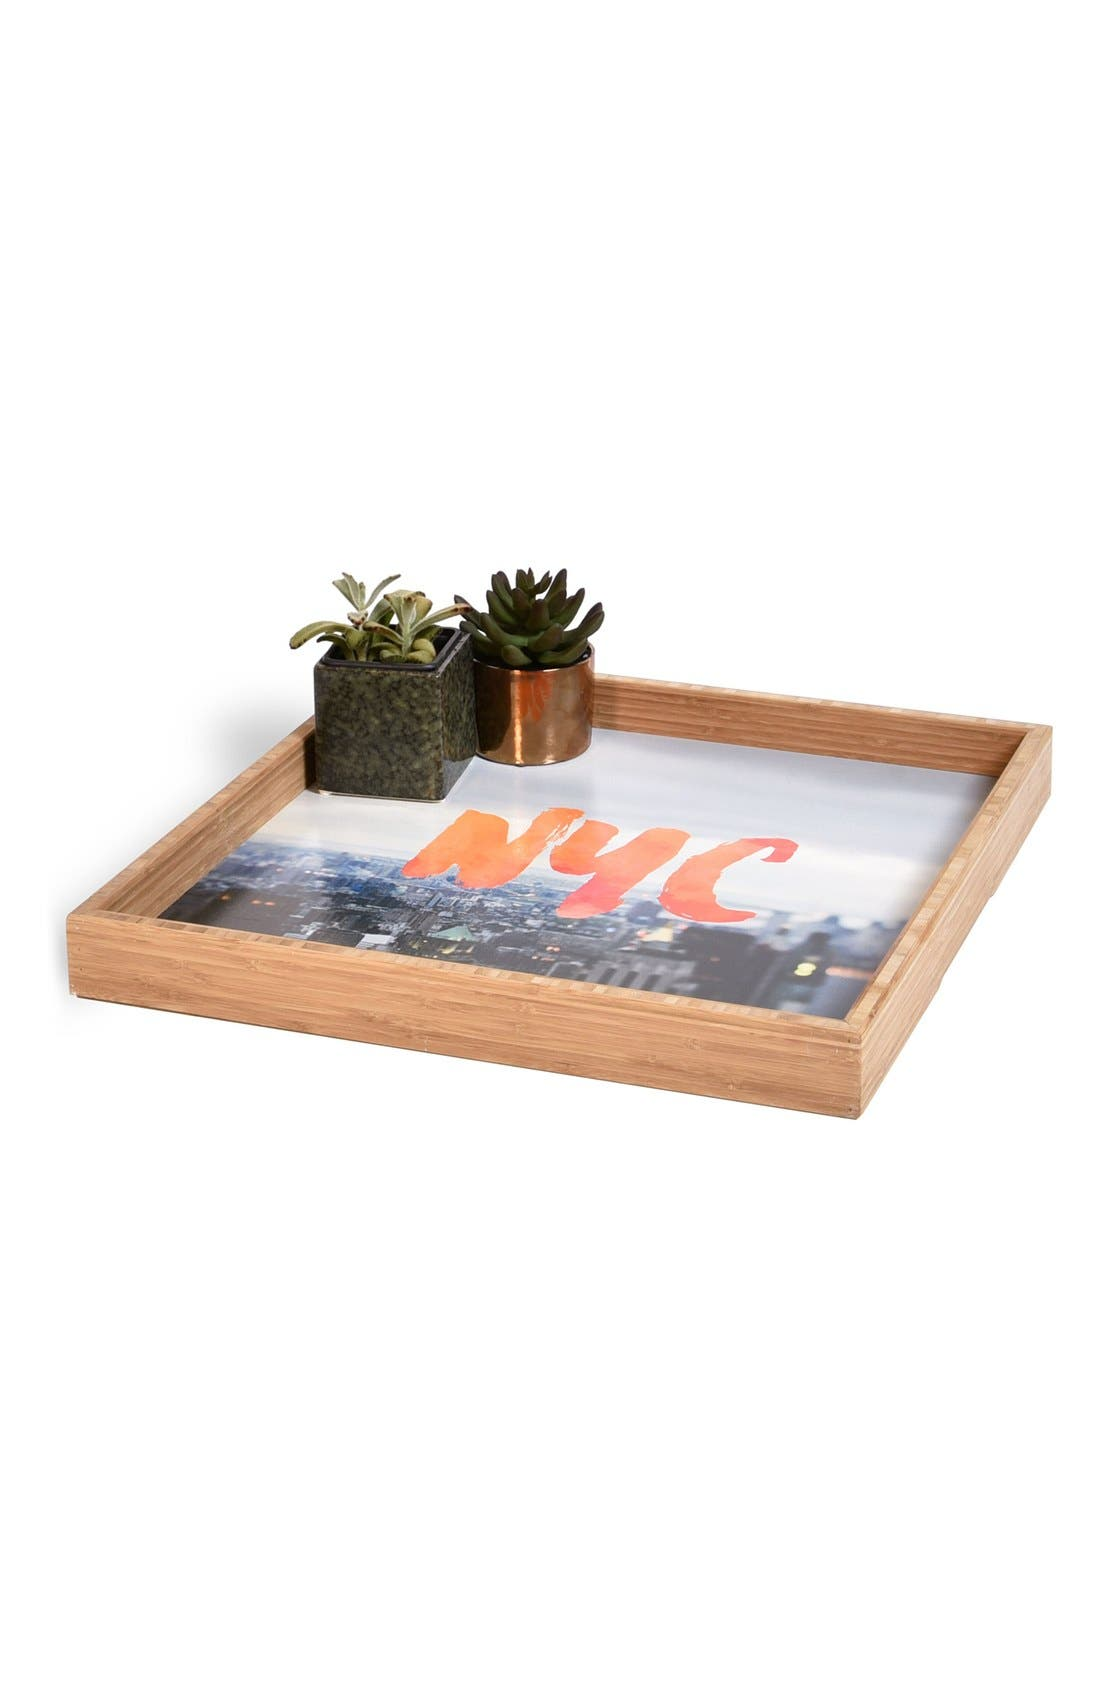 'NYC Skyline' Decorative Serving Tray,                             Alternate thumbnail 2, color,                             800